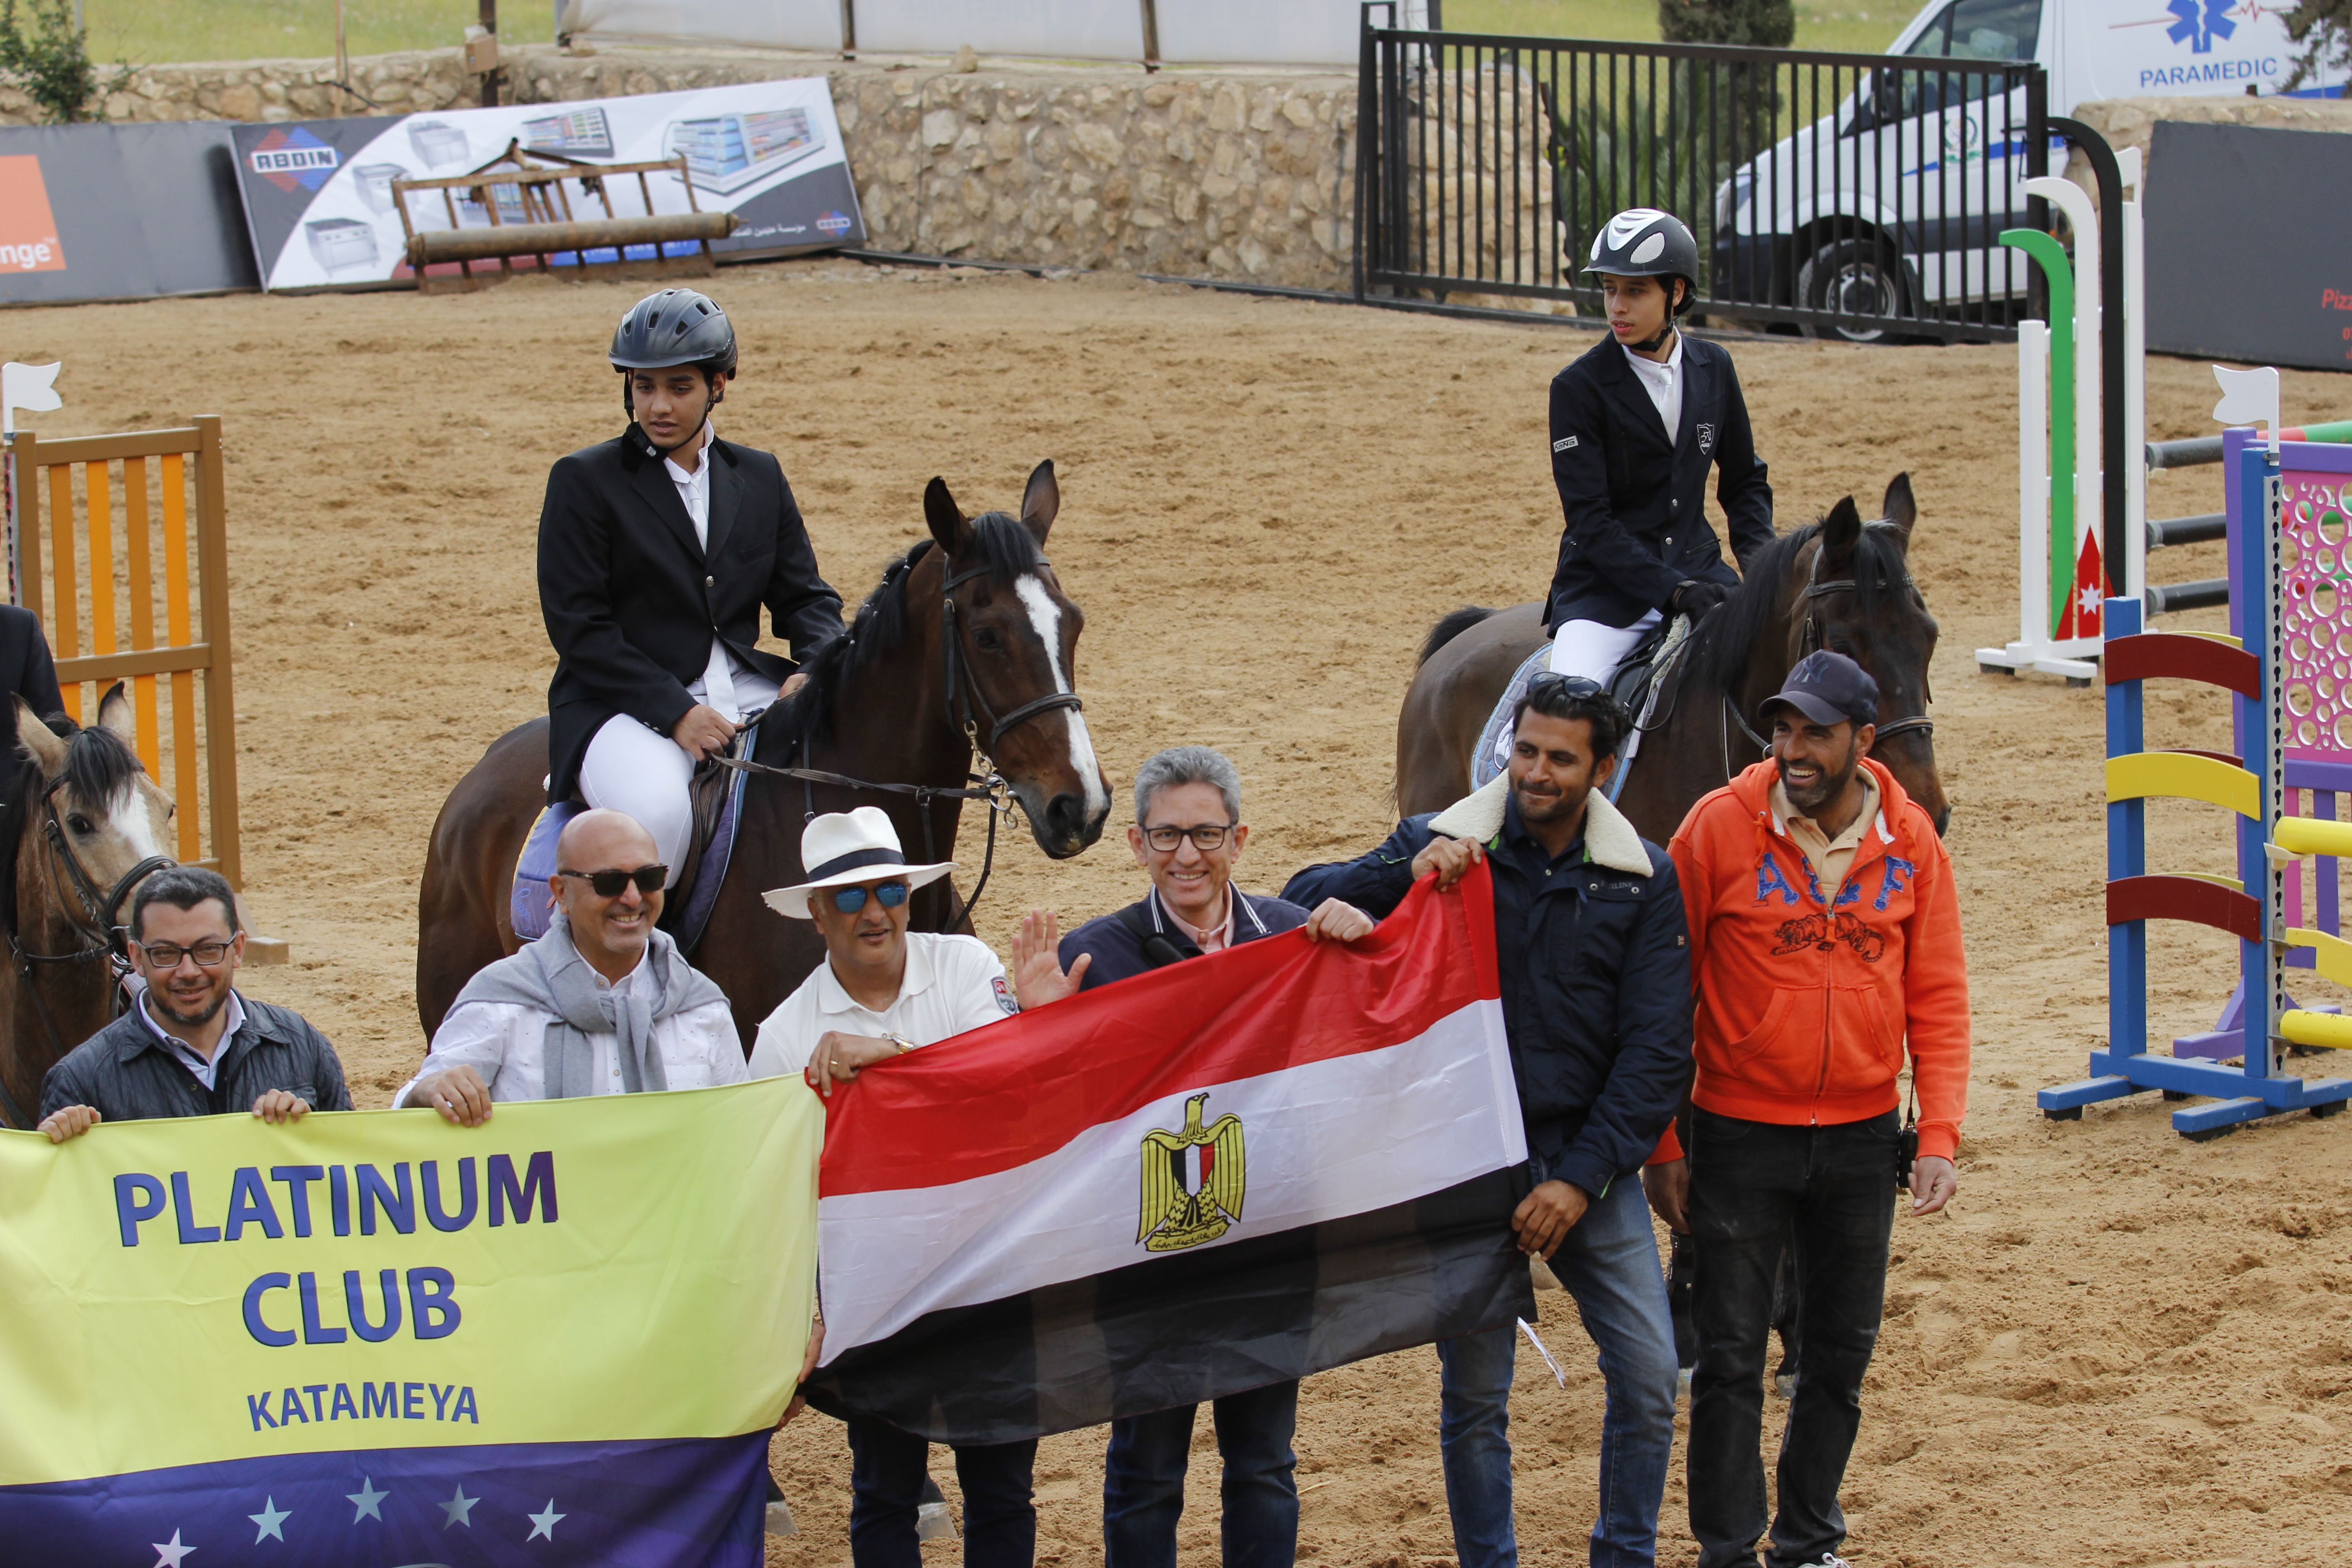 Horse Times Egypt: Equestrian Magazine :News :AMMAN FRIENDLY INTERNATIONAL CLUB S COMPETITIONS 2018  ZIAD TAREK HEMIDA OF PLATINUM CLUB EGYPT CLINCHES THE GOLD